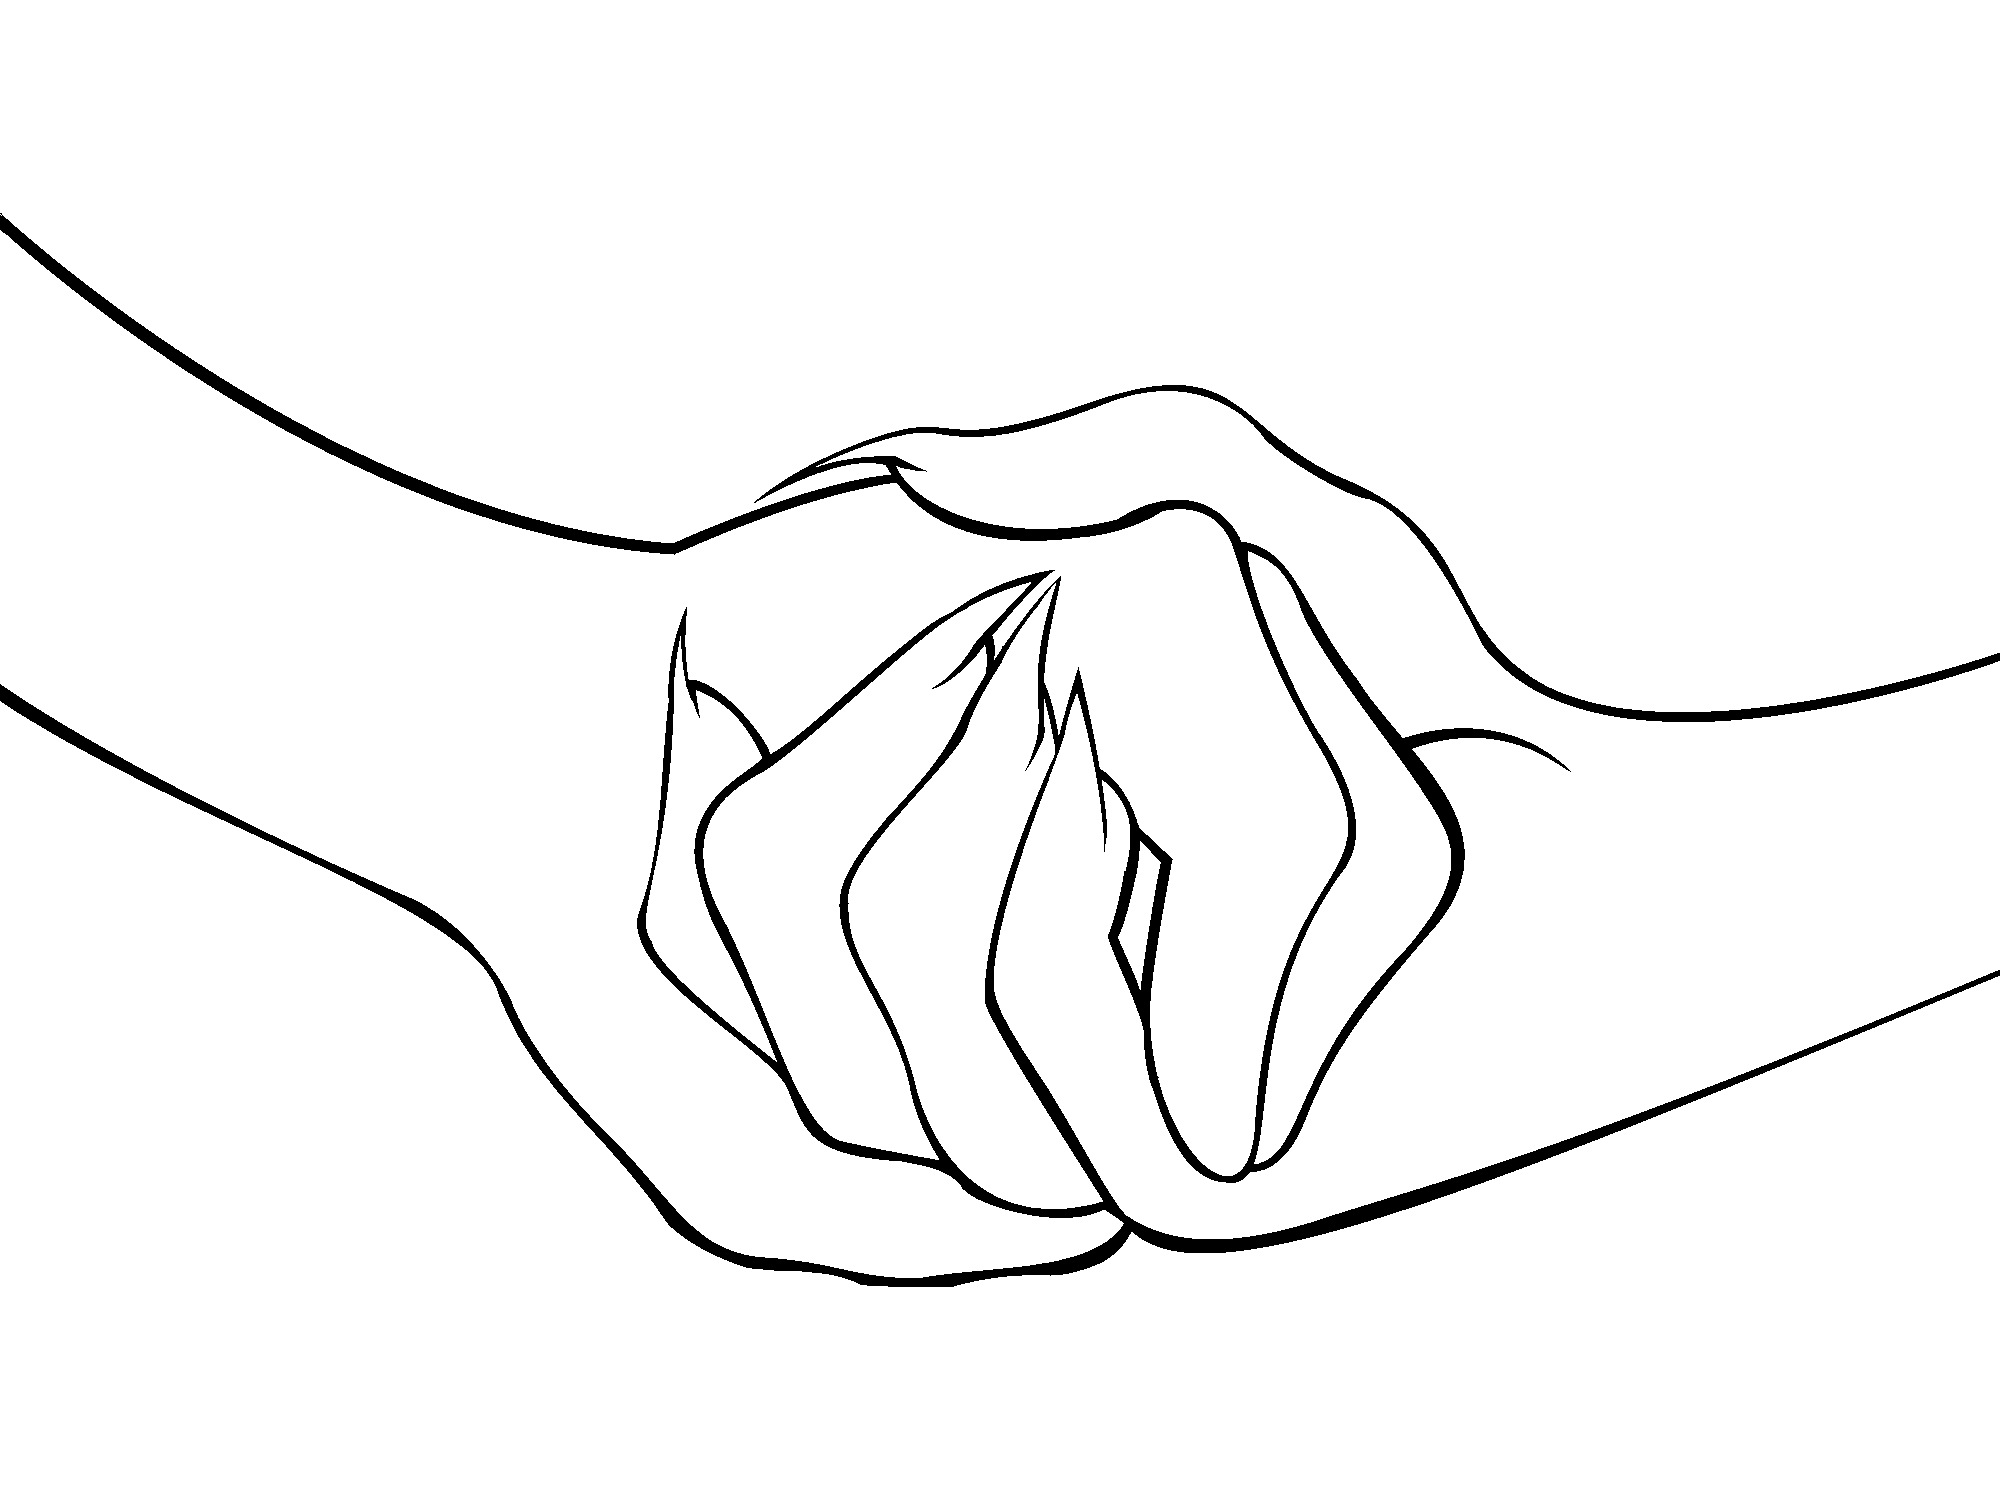 2000x1500 Hold My Hand Base 1 By Tonic Tf